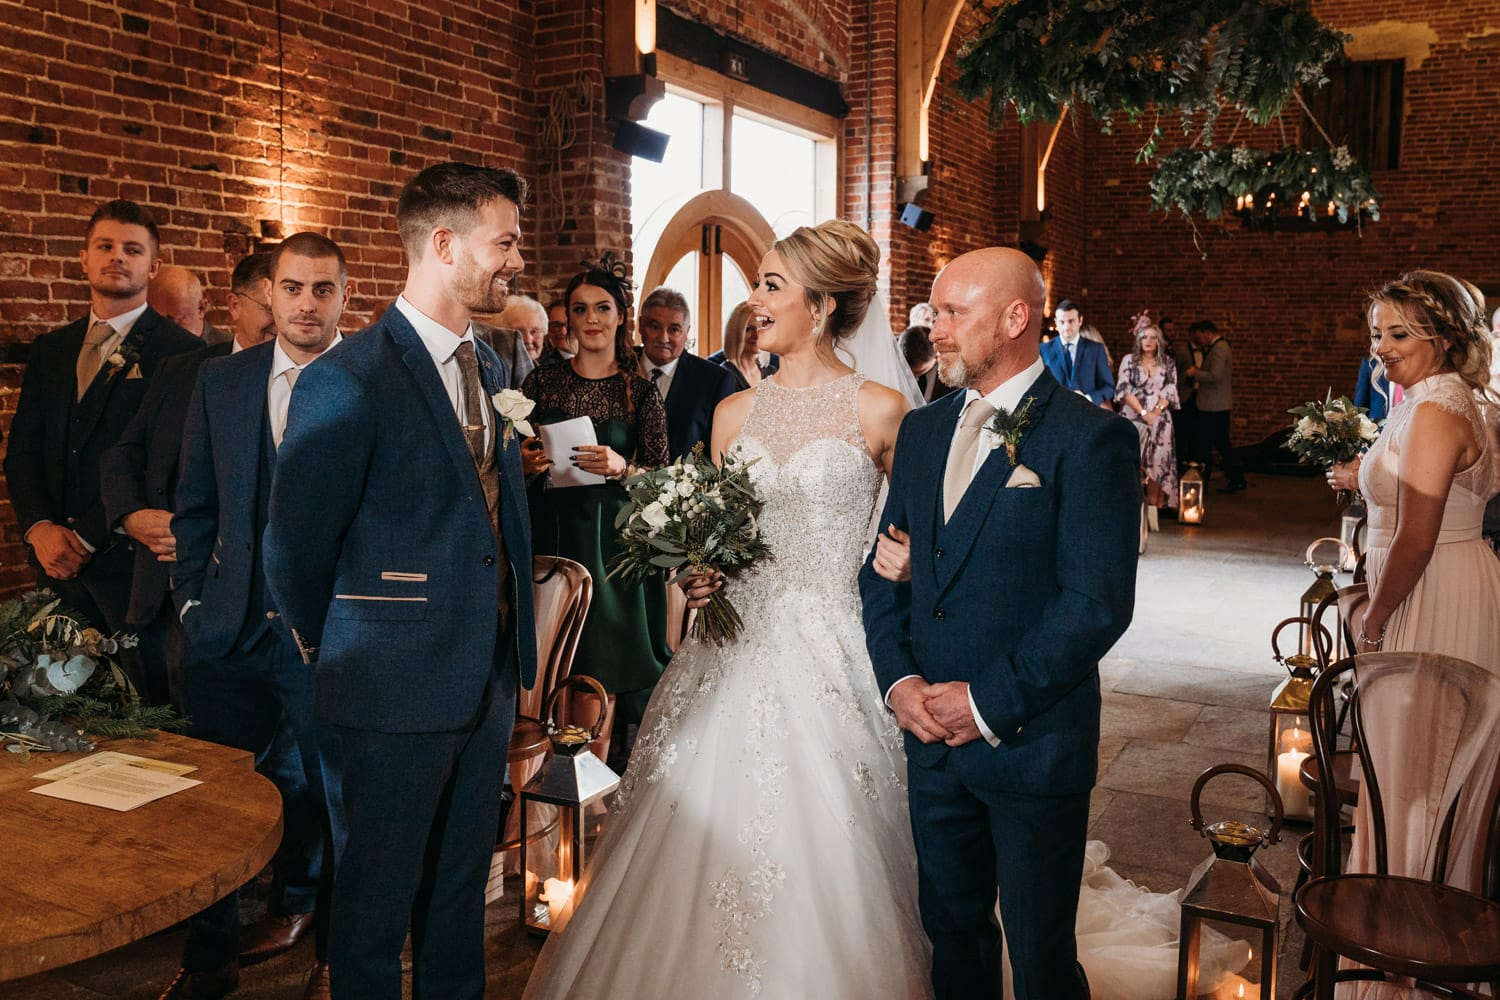 Bride has big smile on face as she meets her waiting groom at Hazel Gap Barn